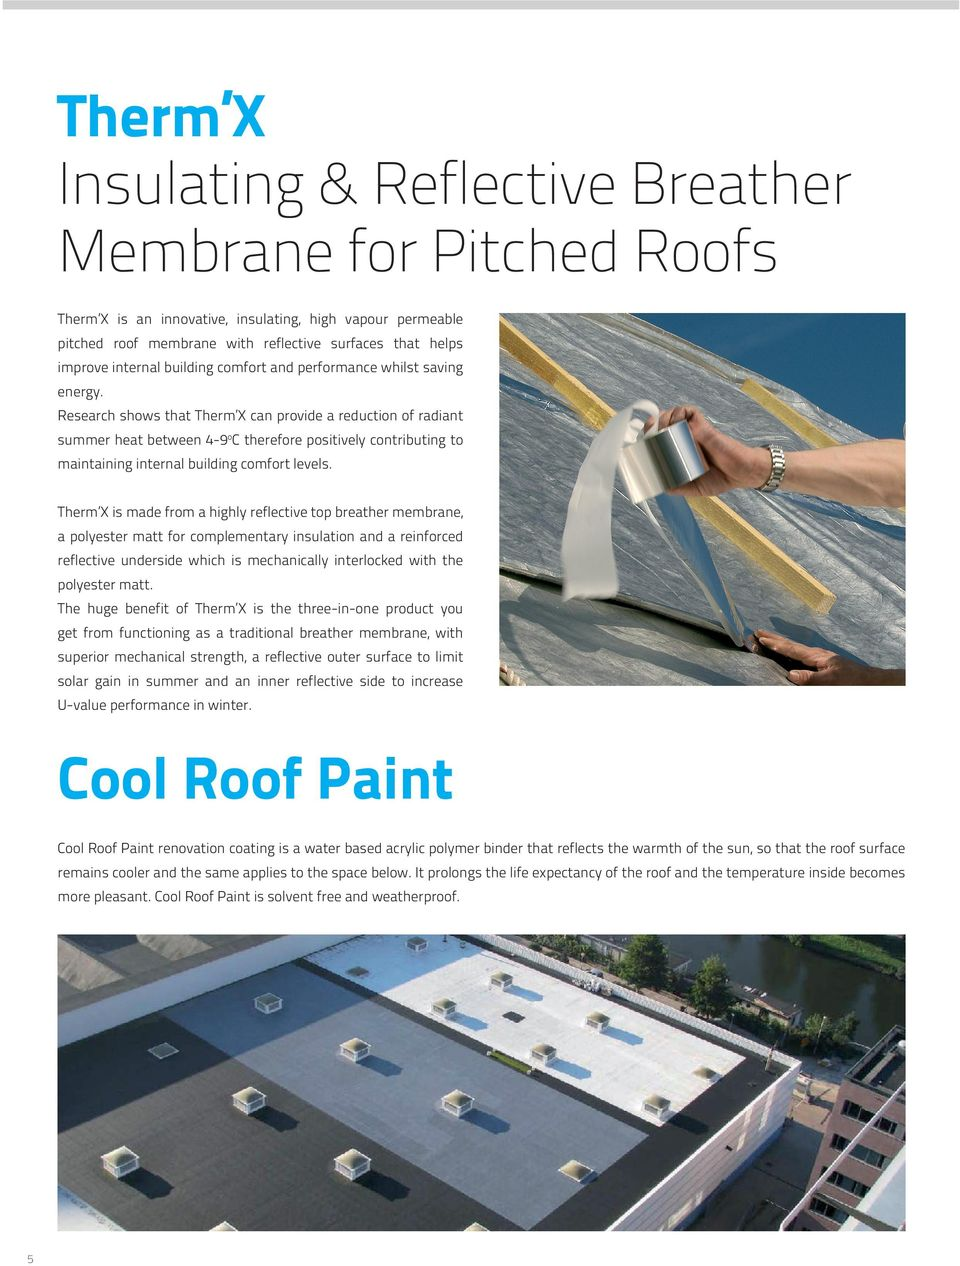 Research shows that Therm X can provide a reduction of radiant summer heat between 4-9 o C therefore positively contributing to maintaining internal building comfort levels.